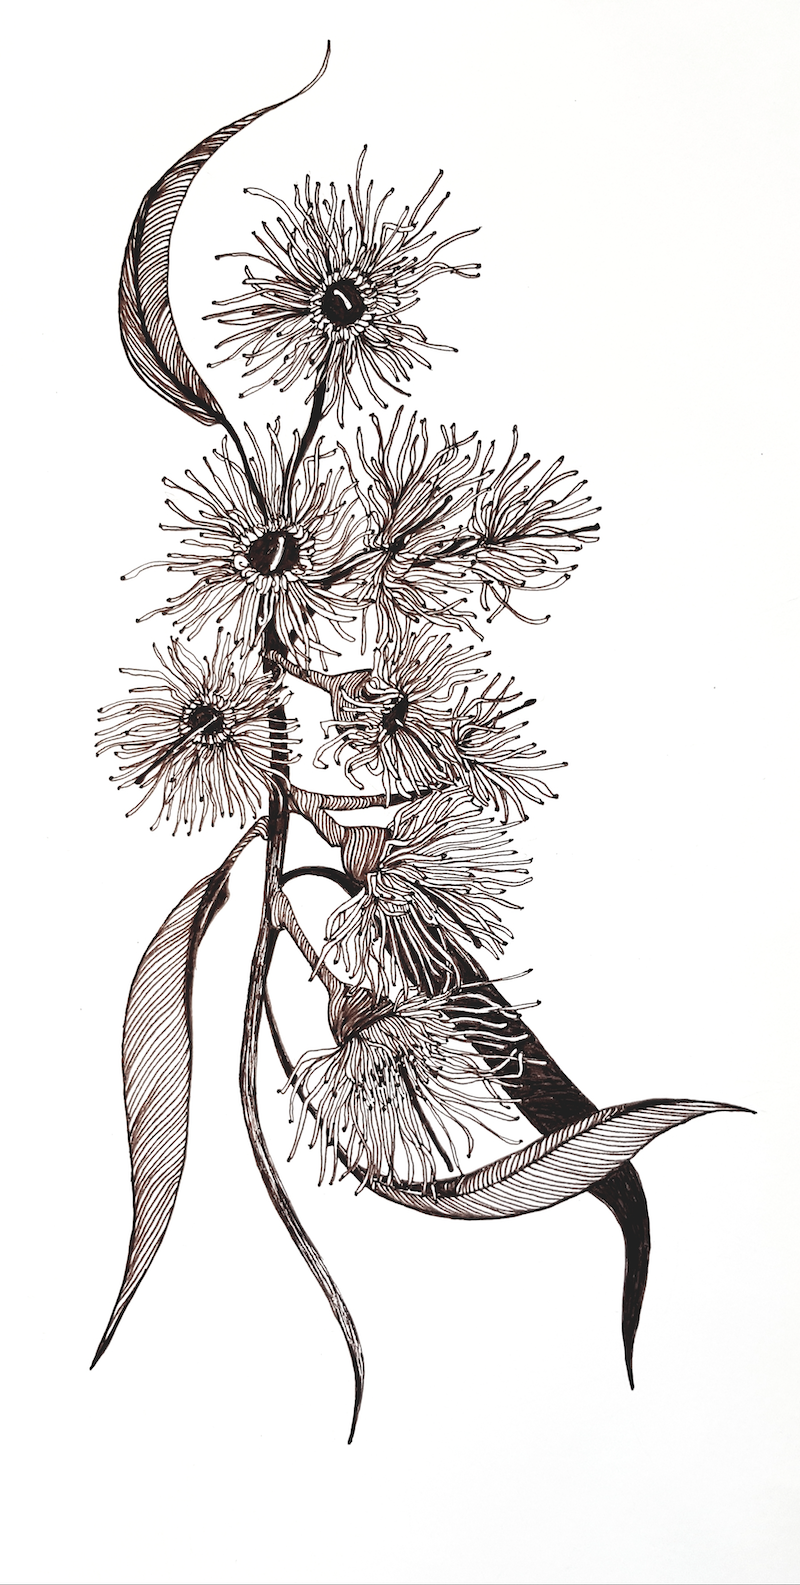 (CreativeWork) Blossoming Beautiful by Jeanette Giroud. Drawings. Shop online at Bluethumb.